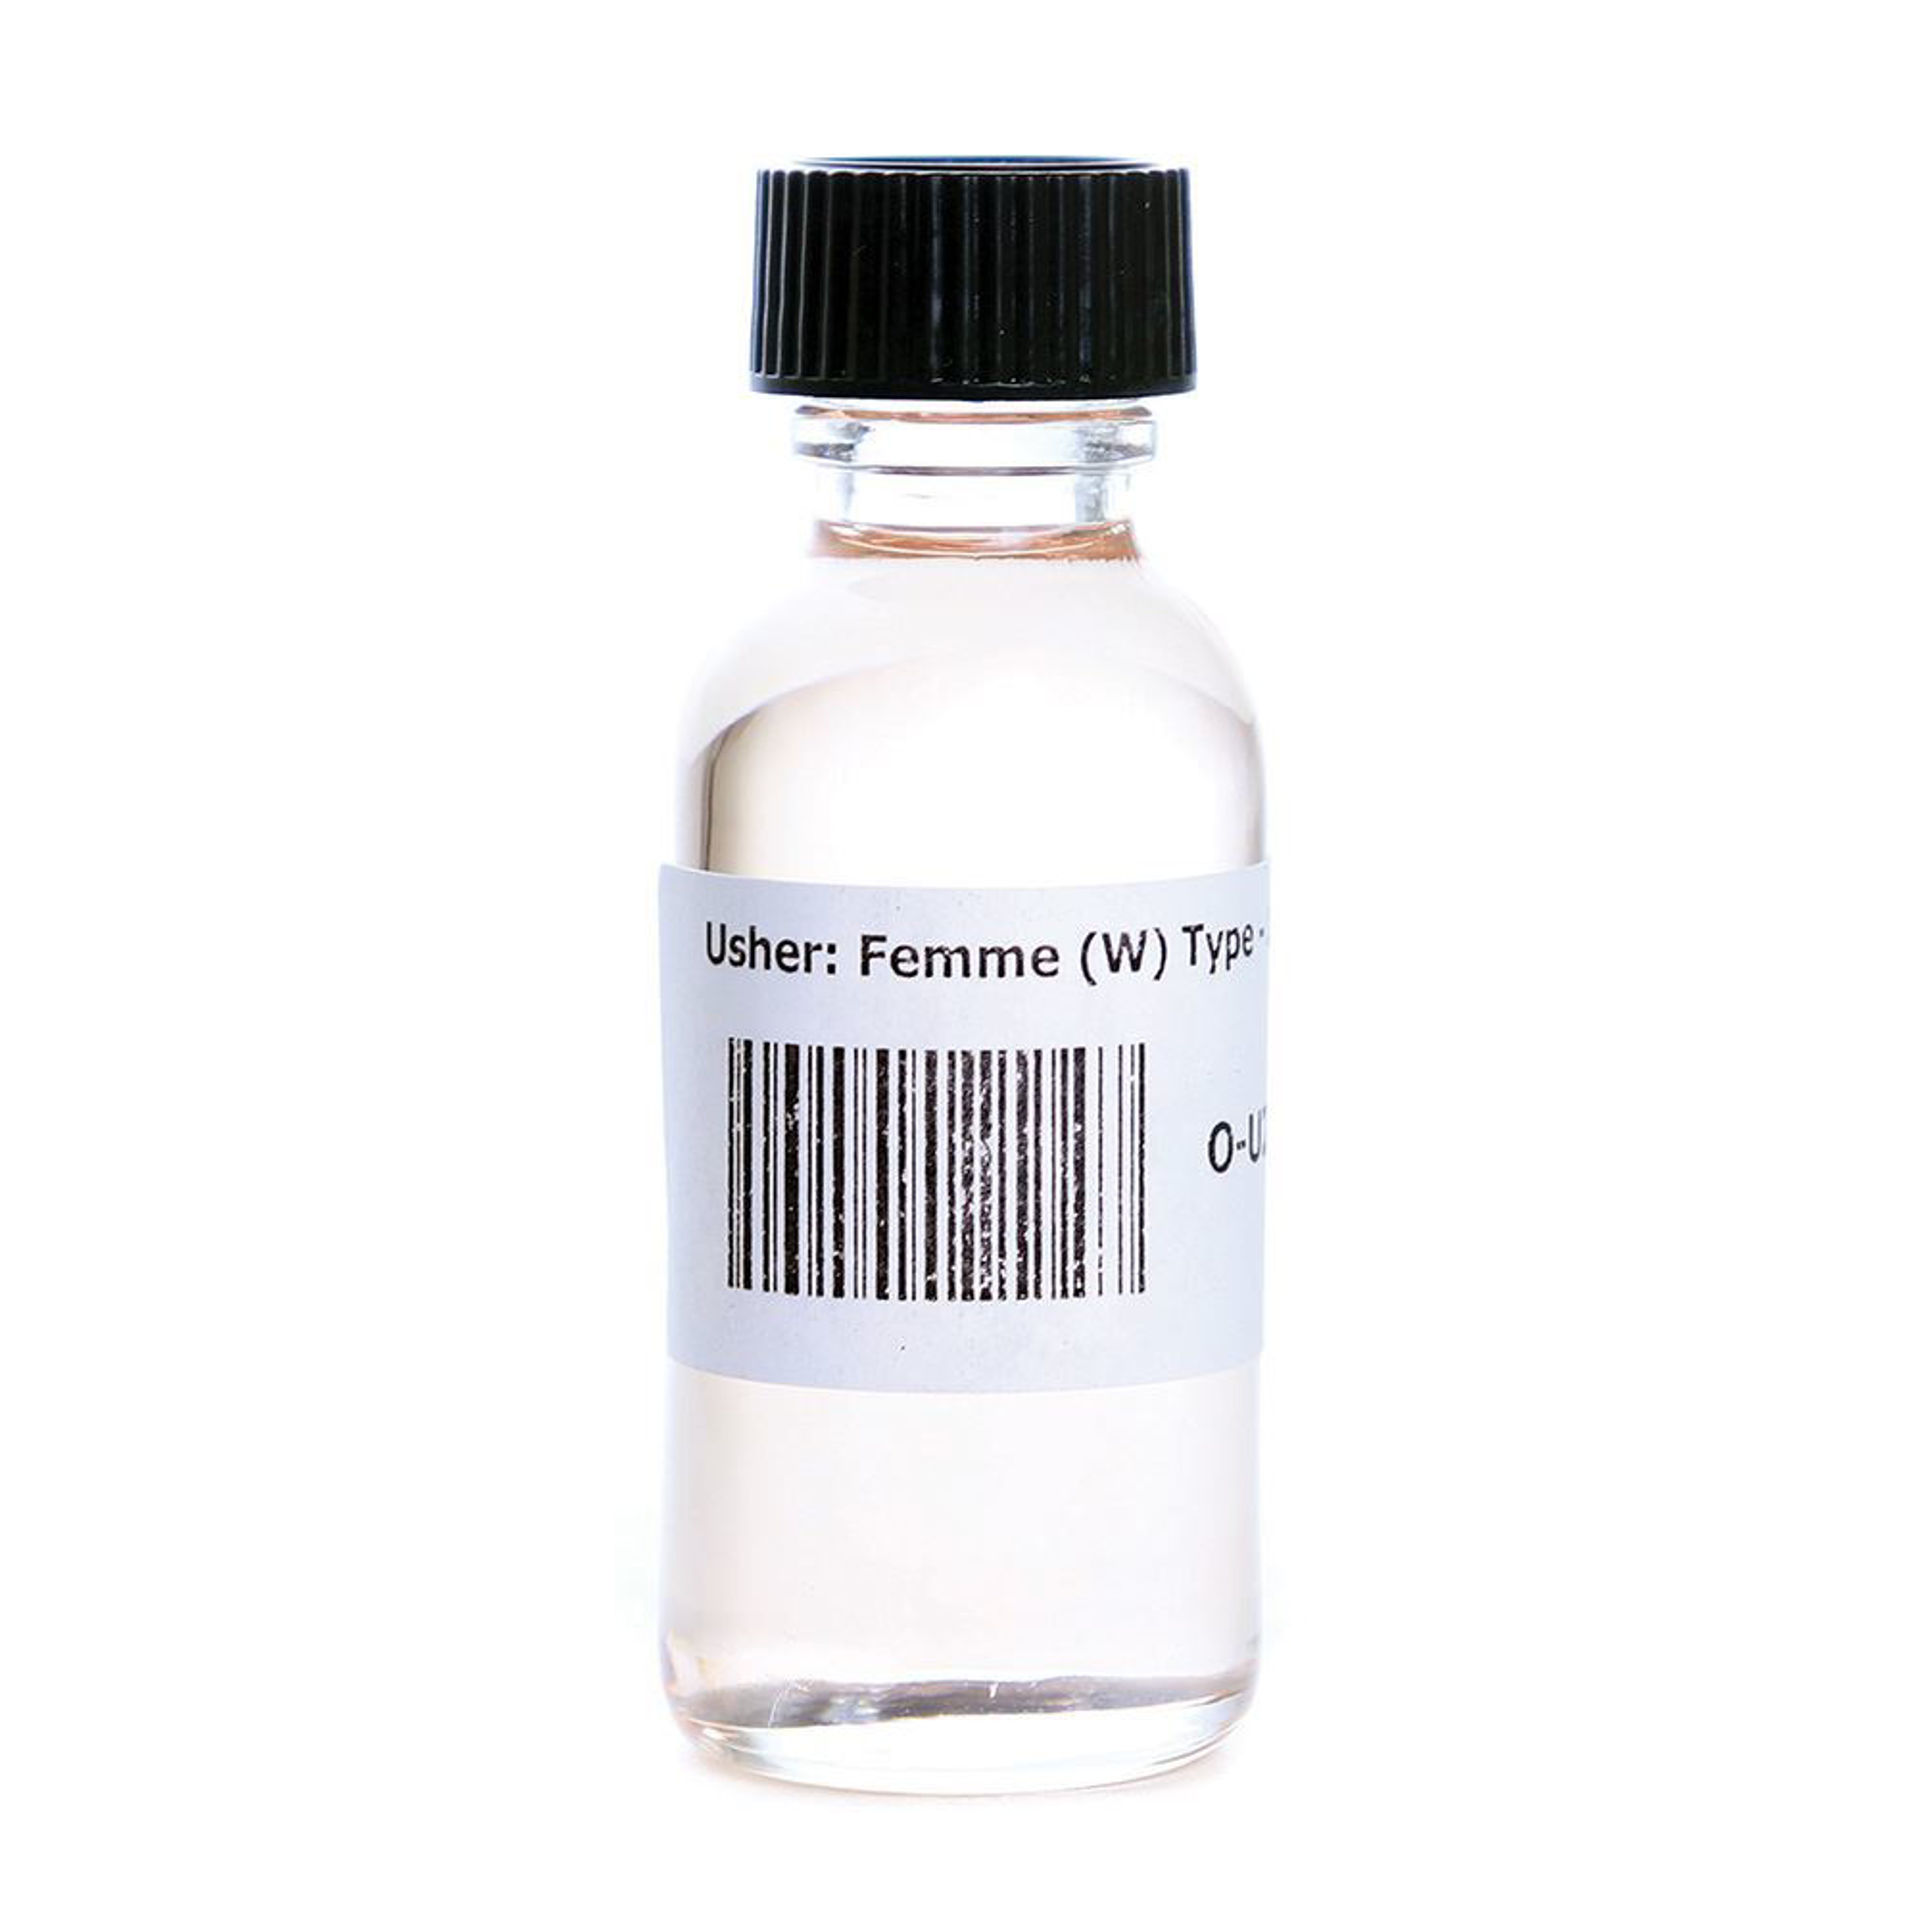 Picture of Usher: Femme (W) Type - 1 oz.